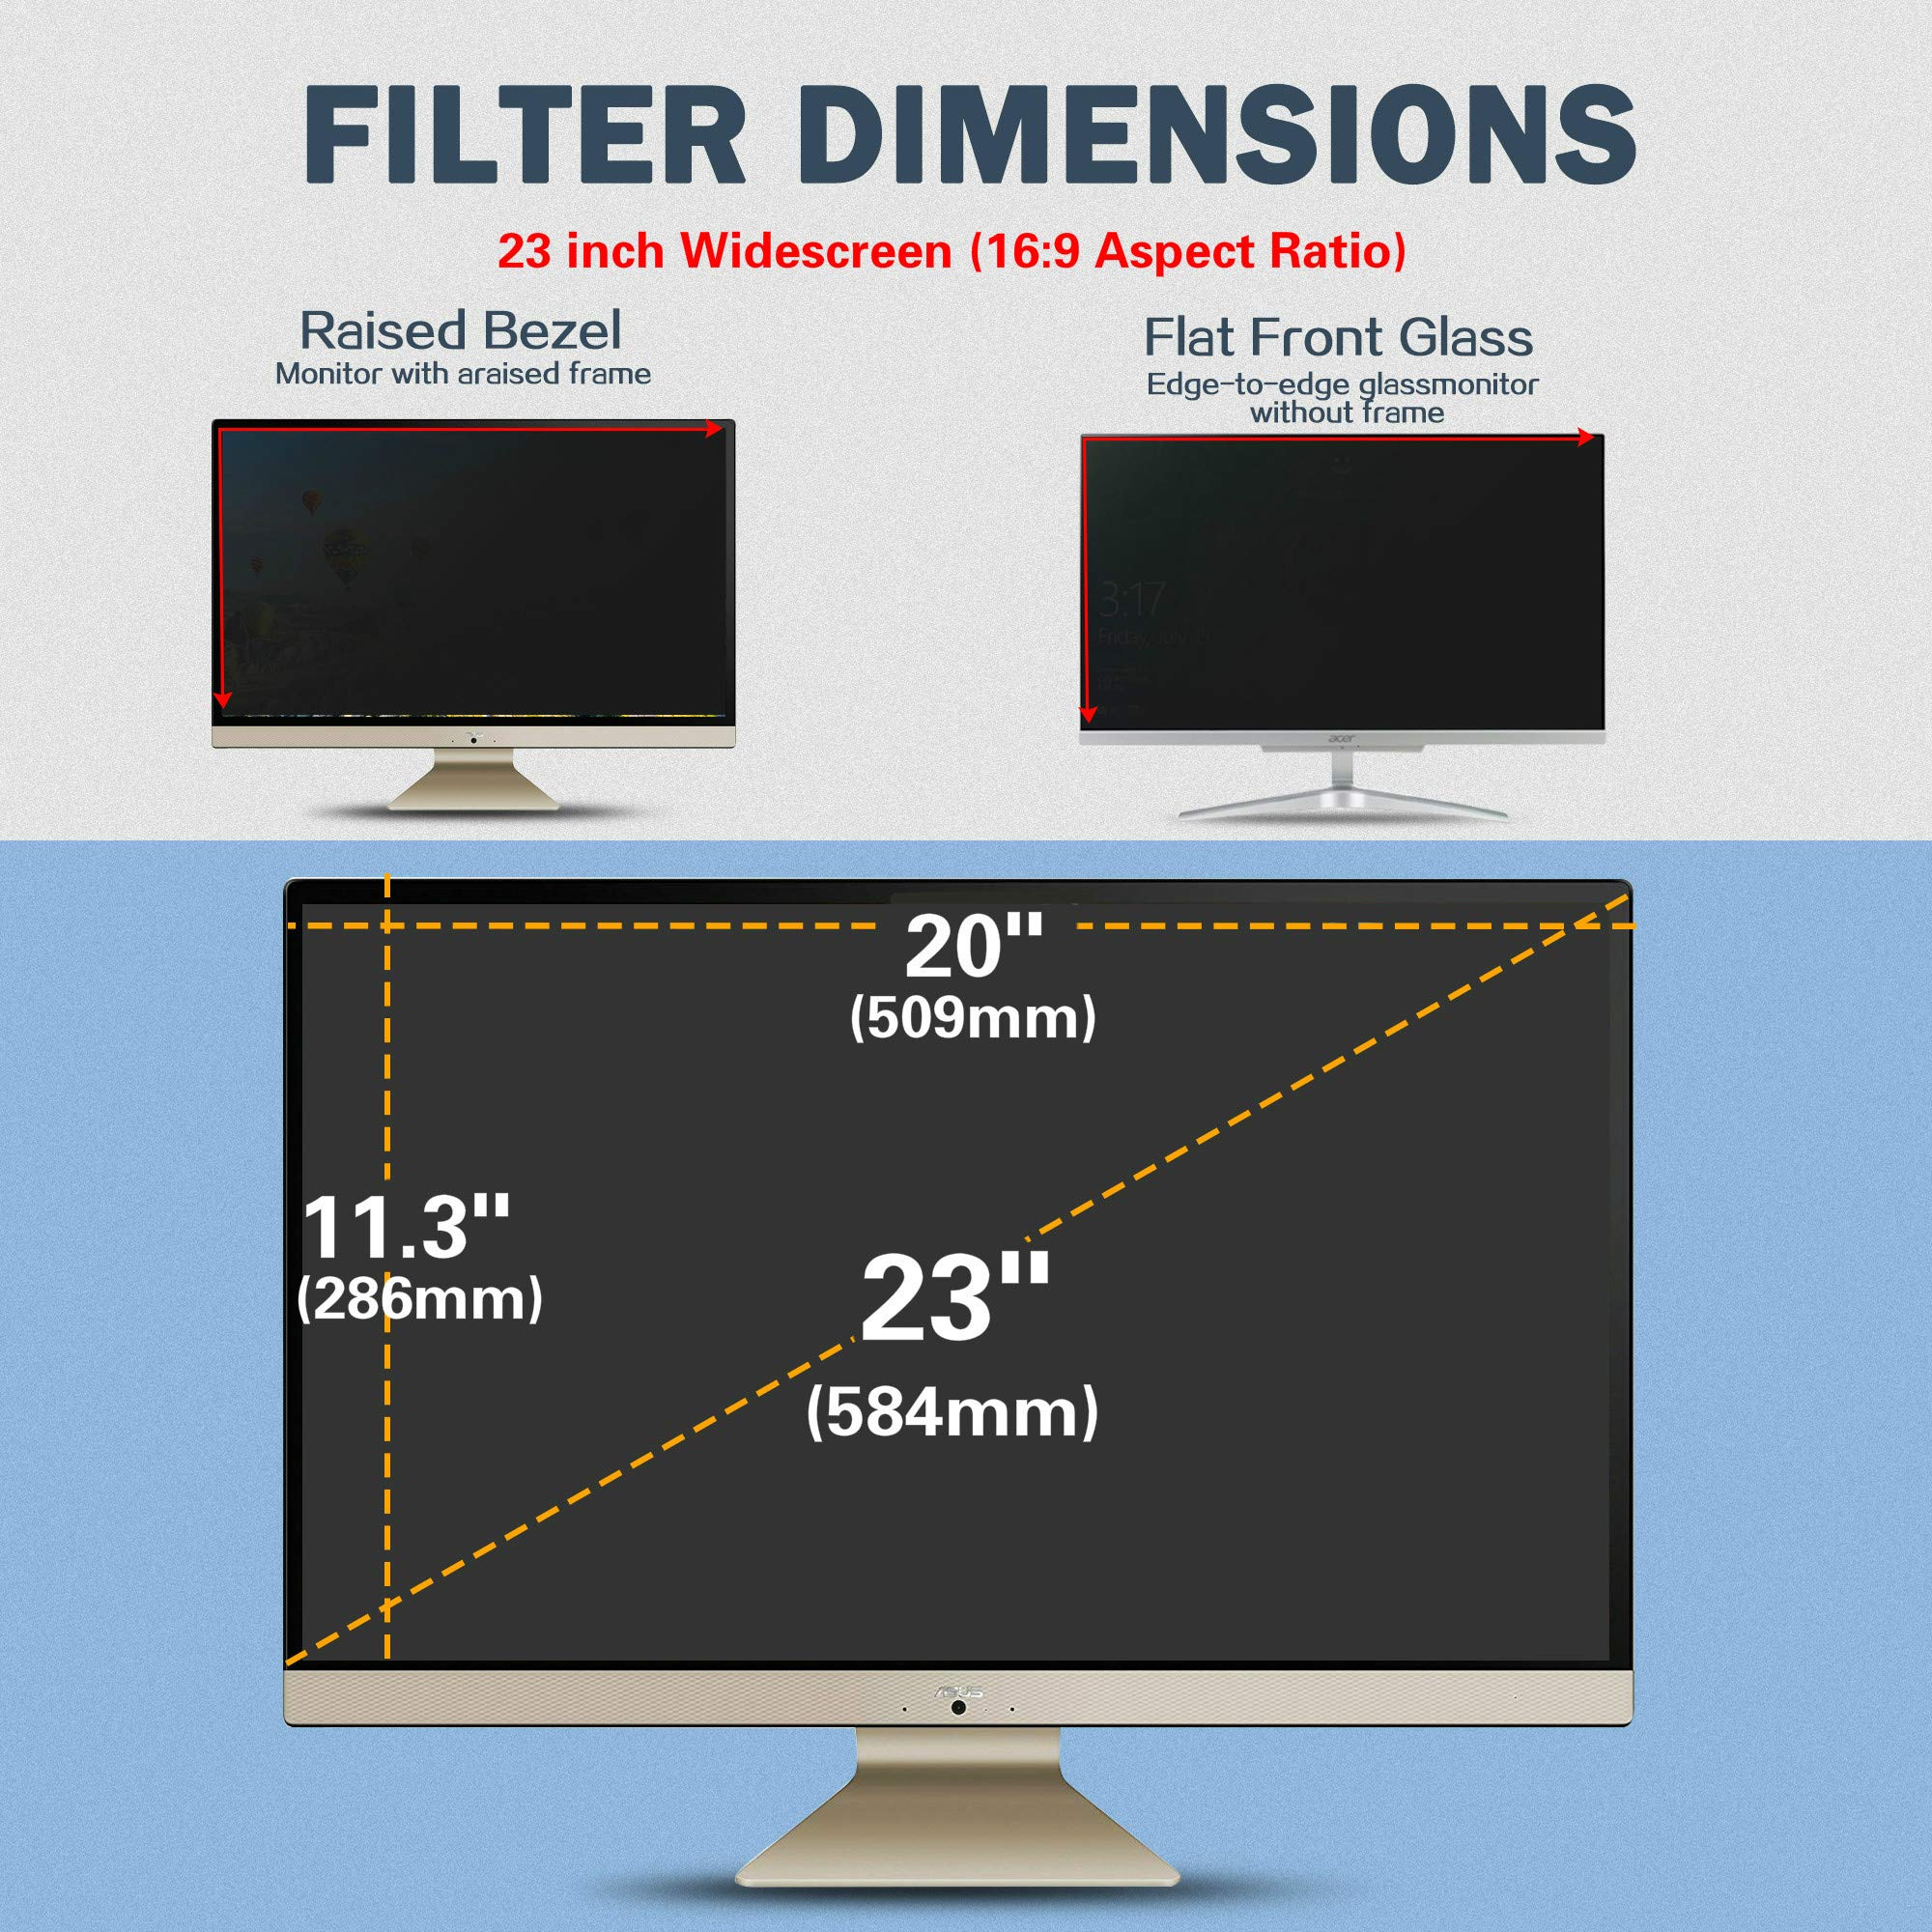 SKYLARKING 23 inches Computer Privacy Screen Filter, Anti-Spy Anti-Glare Screen Protector Film Compatible 23'' Widescreen Computer LCD Monitor with Aspect Ratio 16:9 (509mm x 286mm) by Skylarking (Image #8)